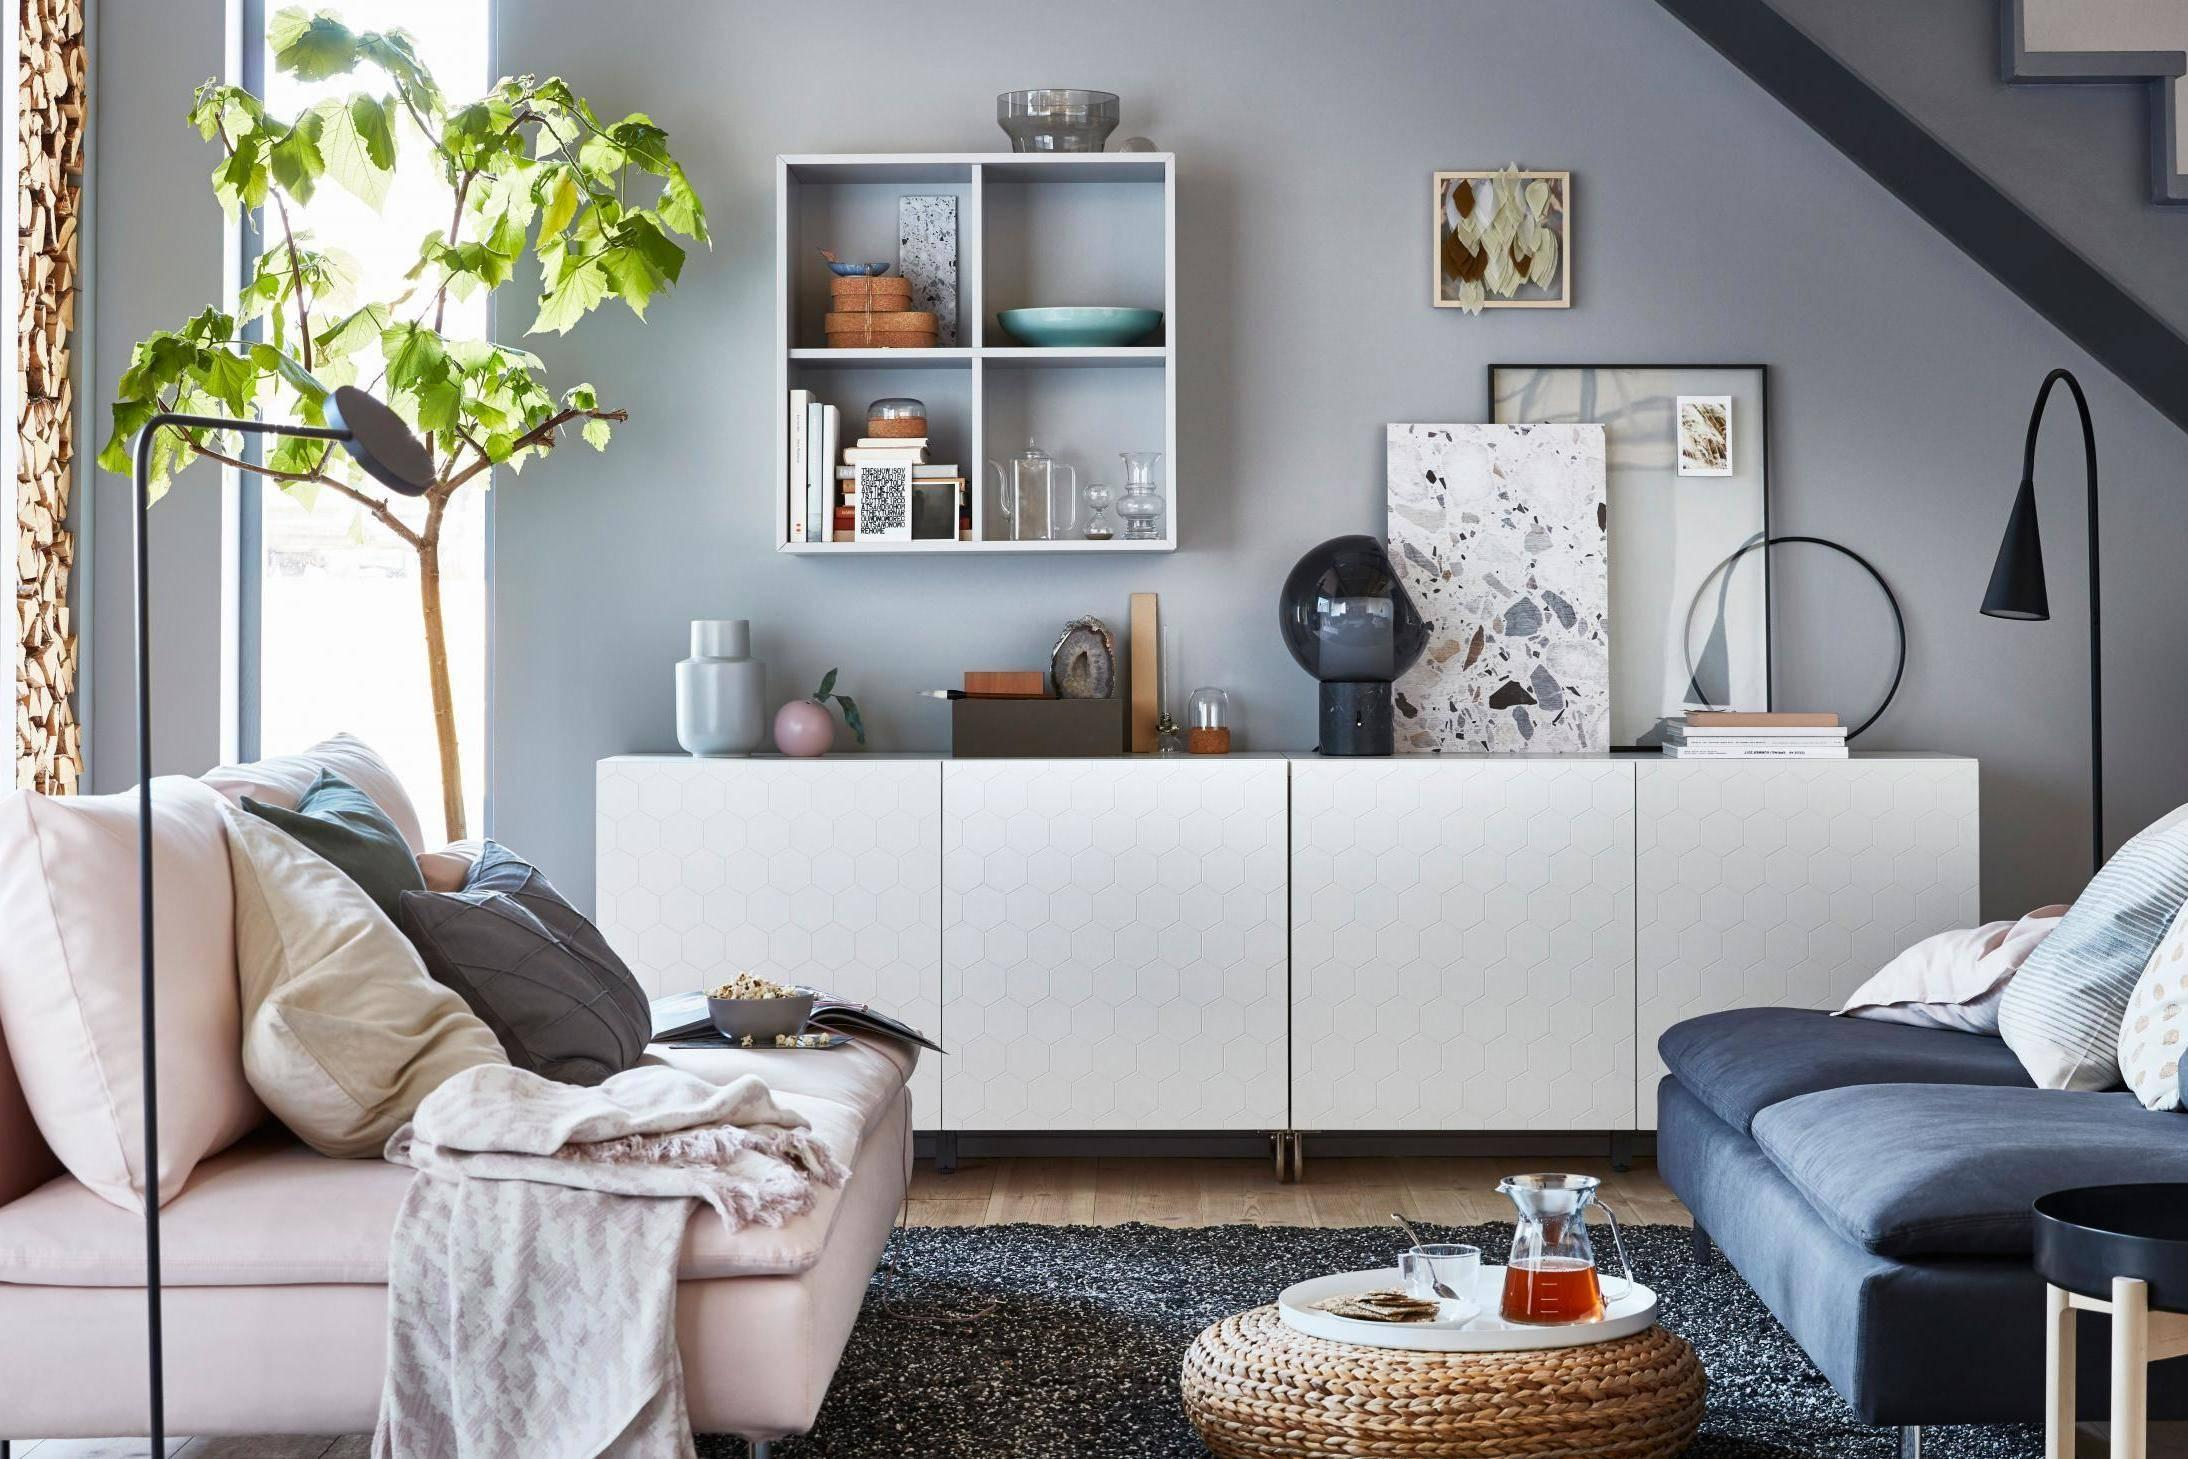 Design Kast Ikea : Ikea latest news breaking stories and comment the independent